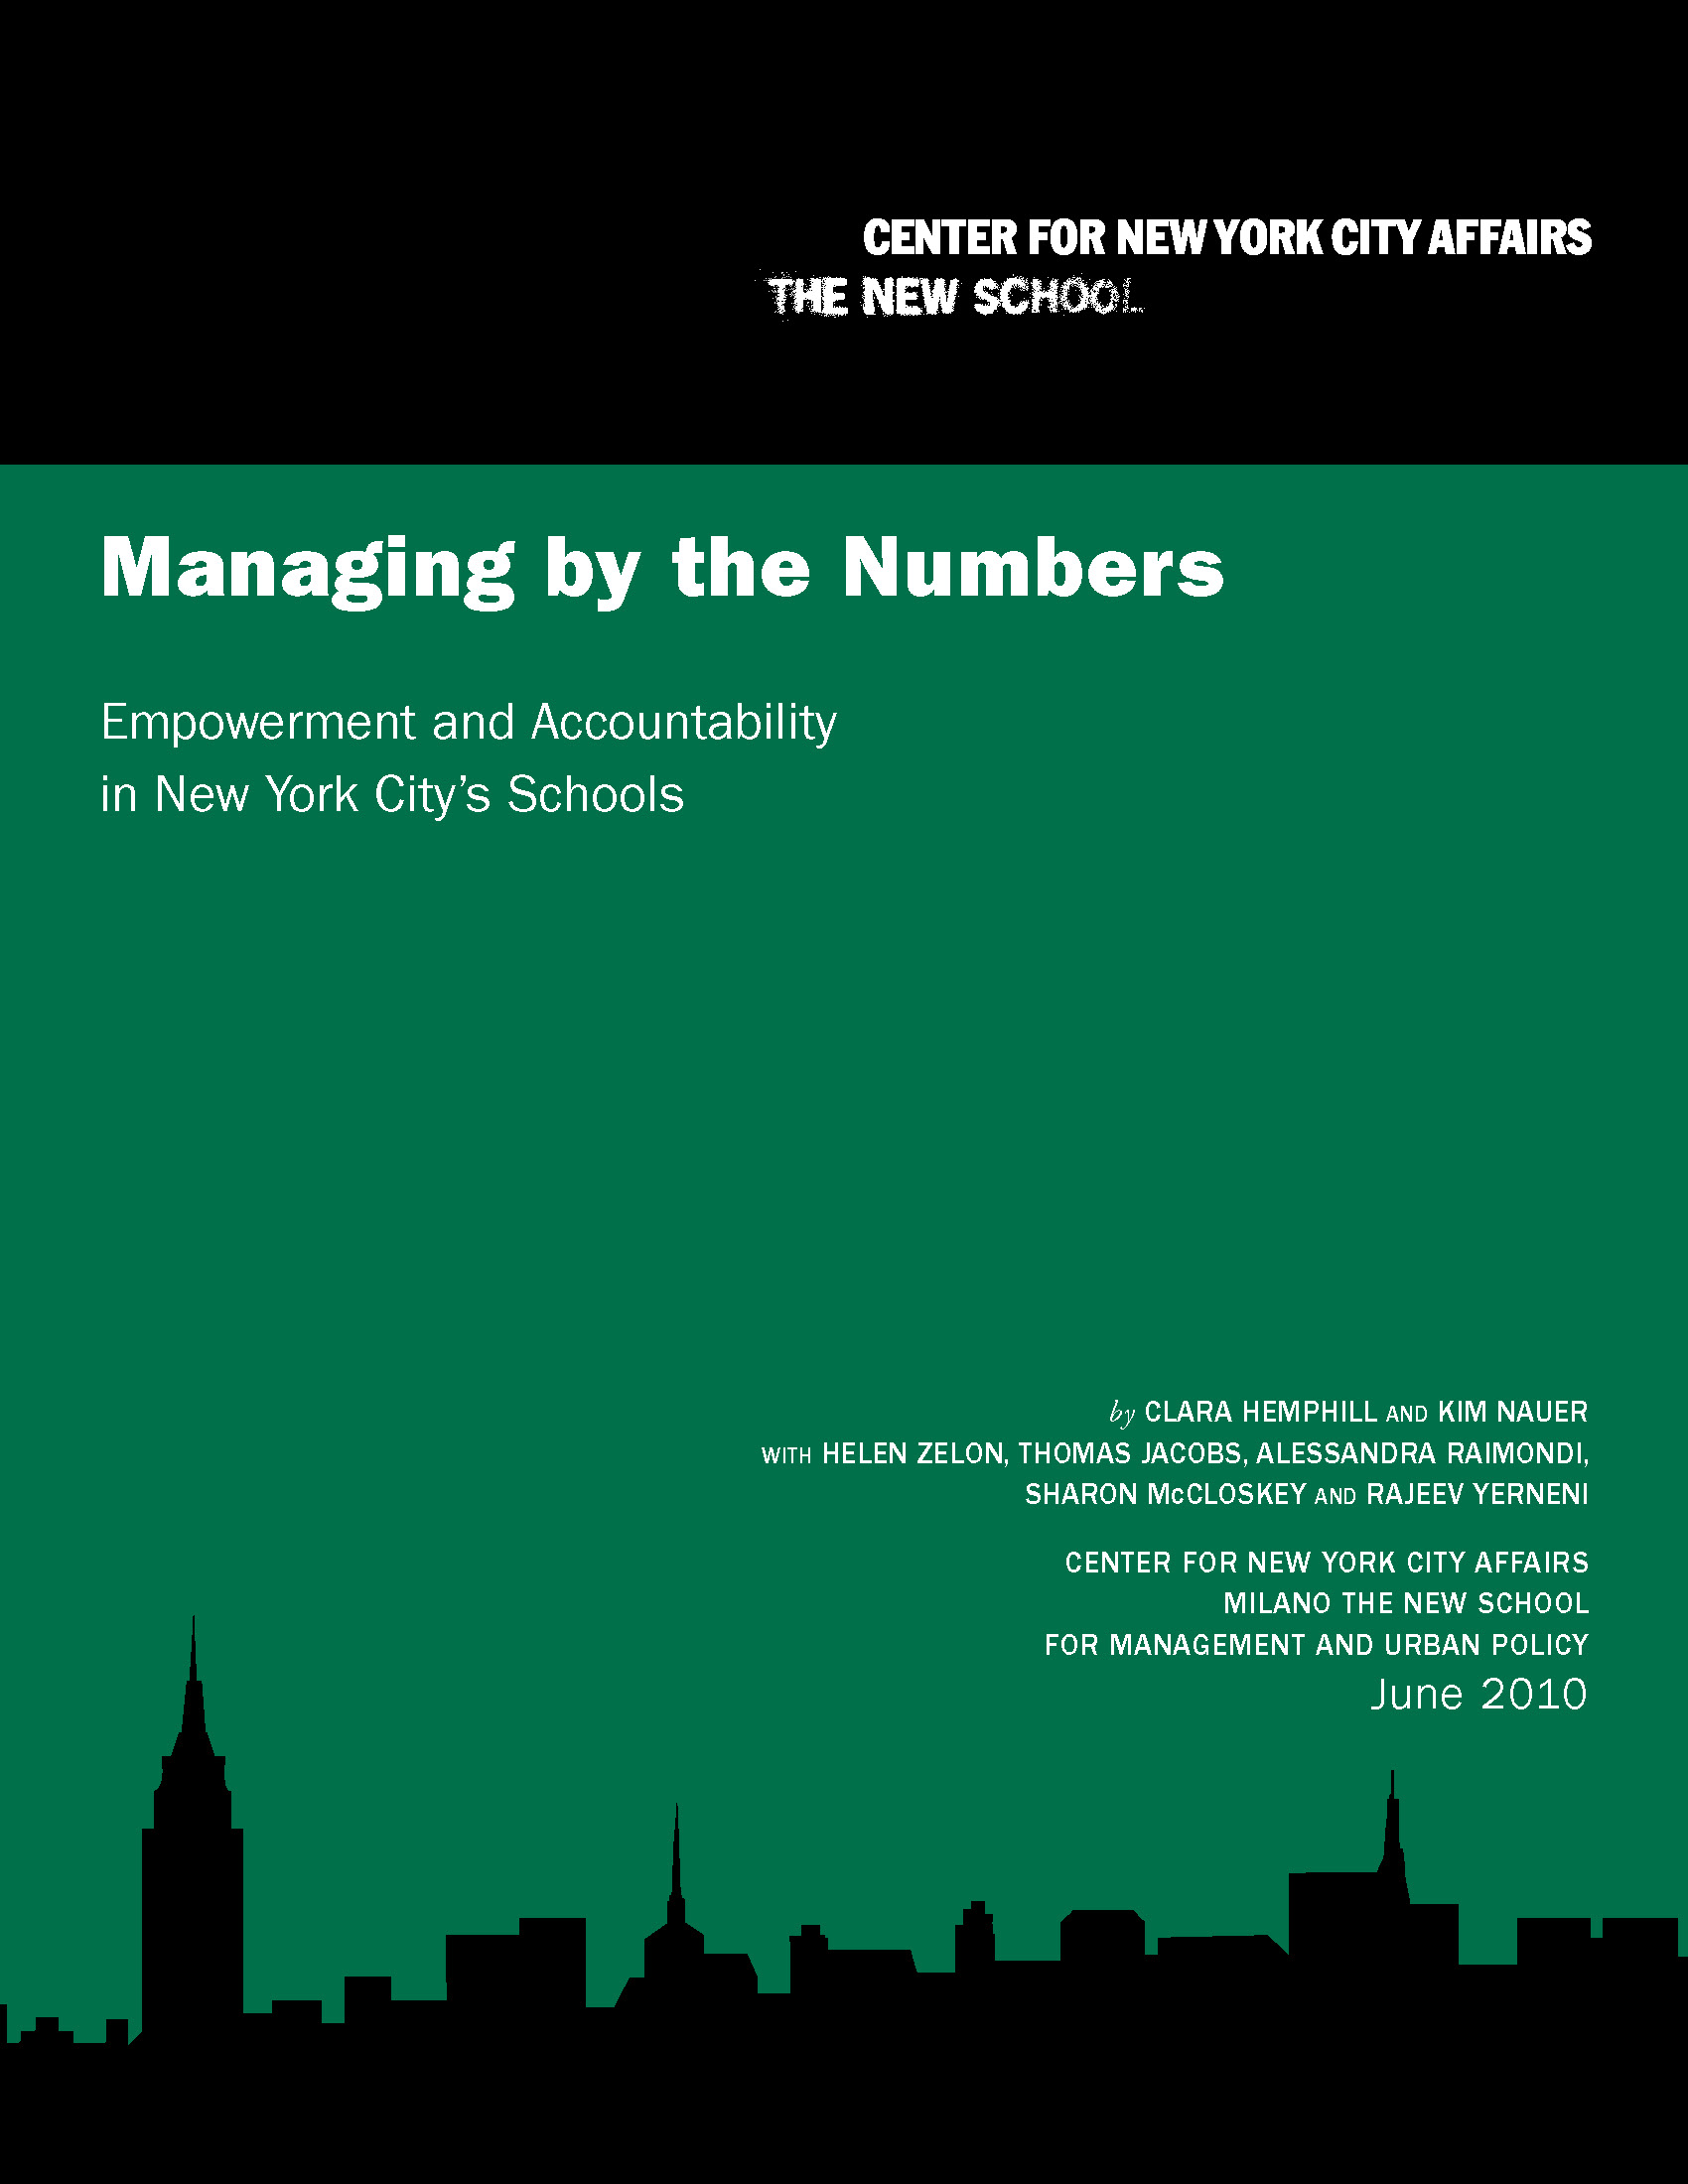 Pages from ManagingByTheNumbers_EmpowermentandAccountabilityinNYCSchools.jpg